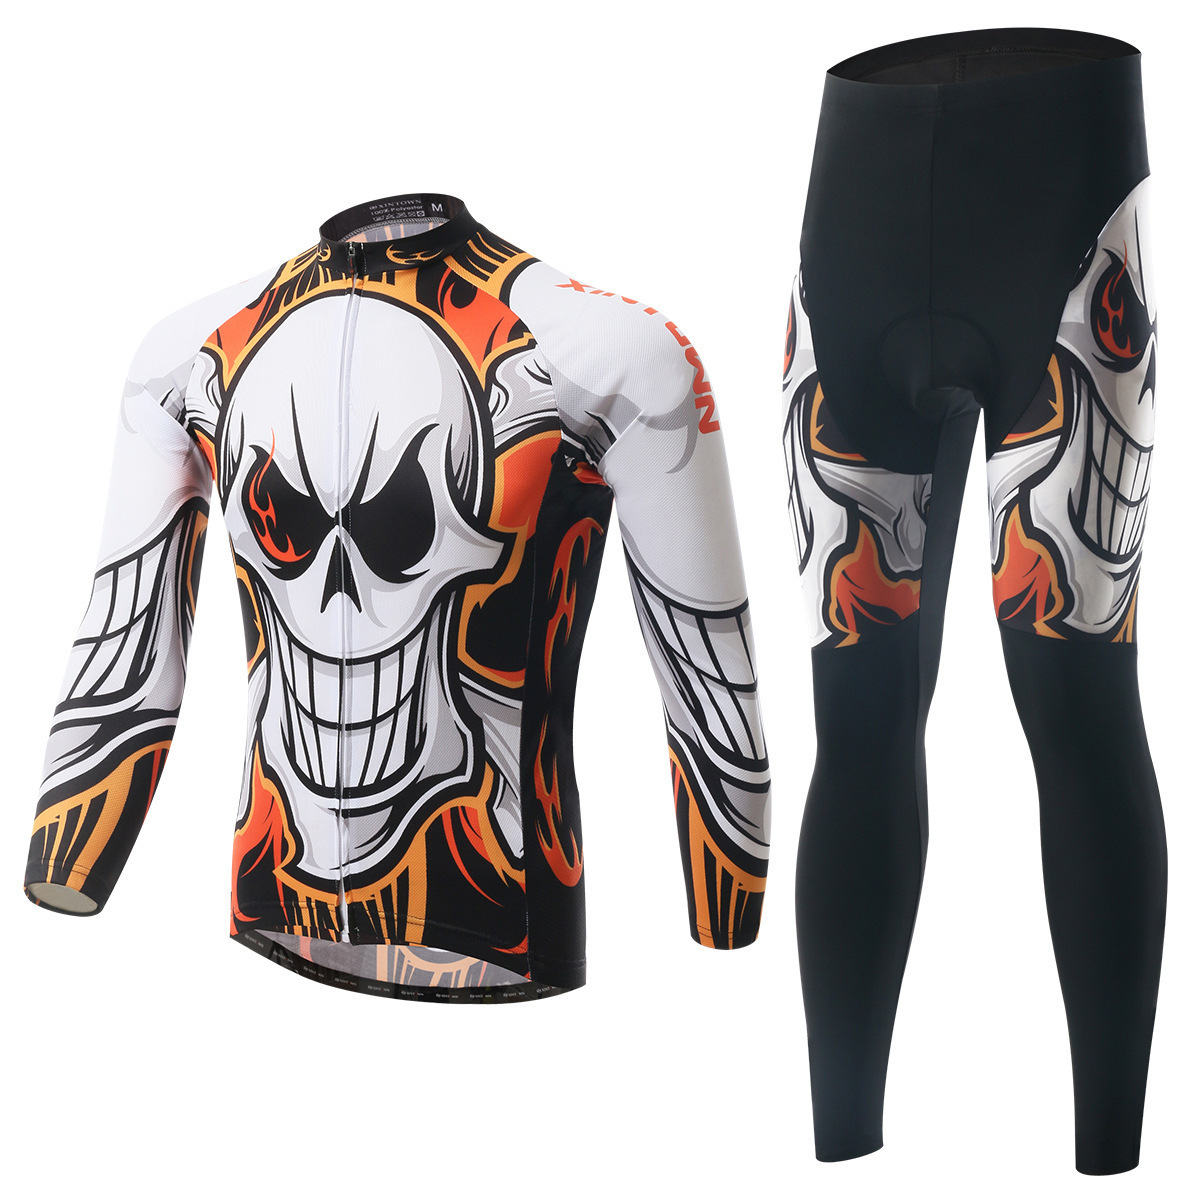 XINTOWN Cycling Jerseys Cycling Set Spring Long Sleeves Sets Autumn Sets Racing MTB Suit Maillot Bike Clothing Ropa Ciclismo xintown men s cycling clothing bike ropa ciclismo suit bicycle jerseys